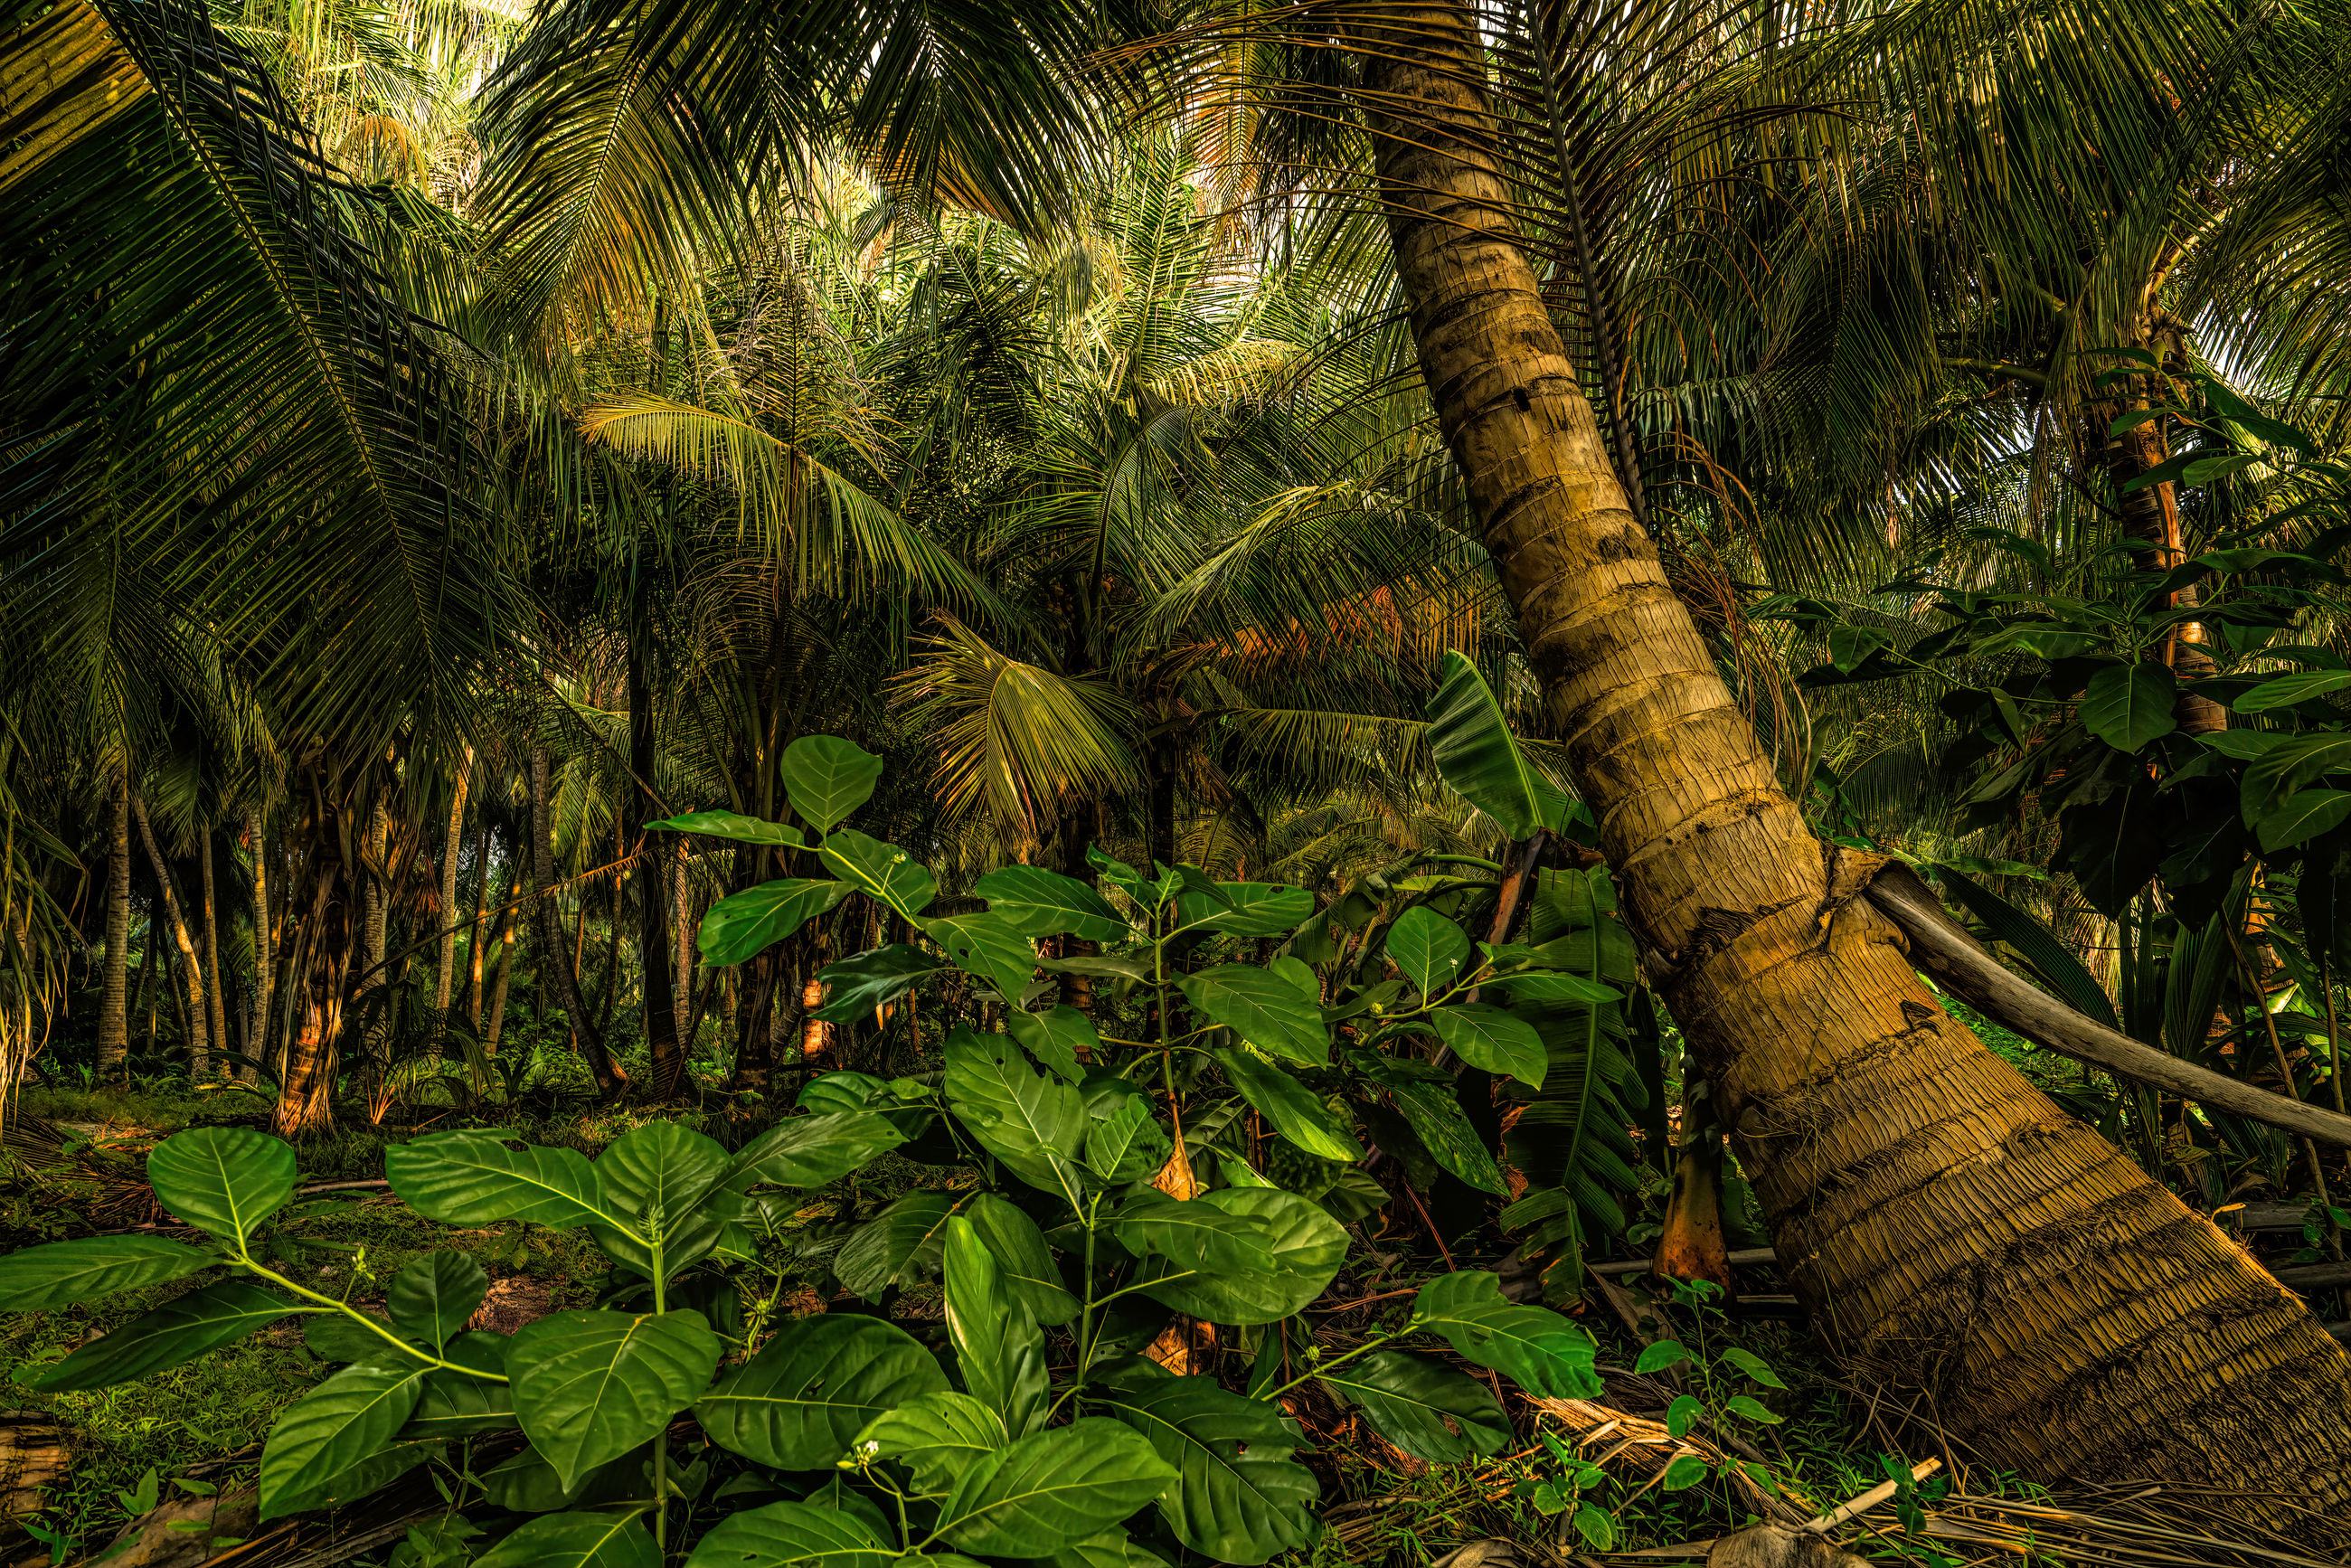 View of palm trees in forest